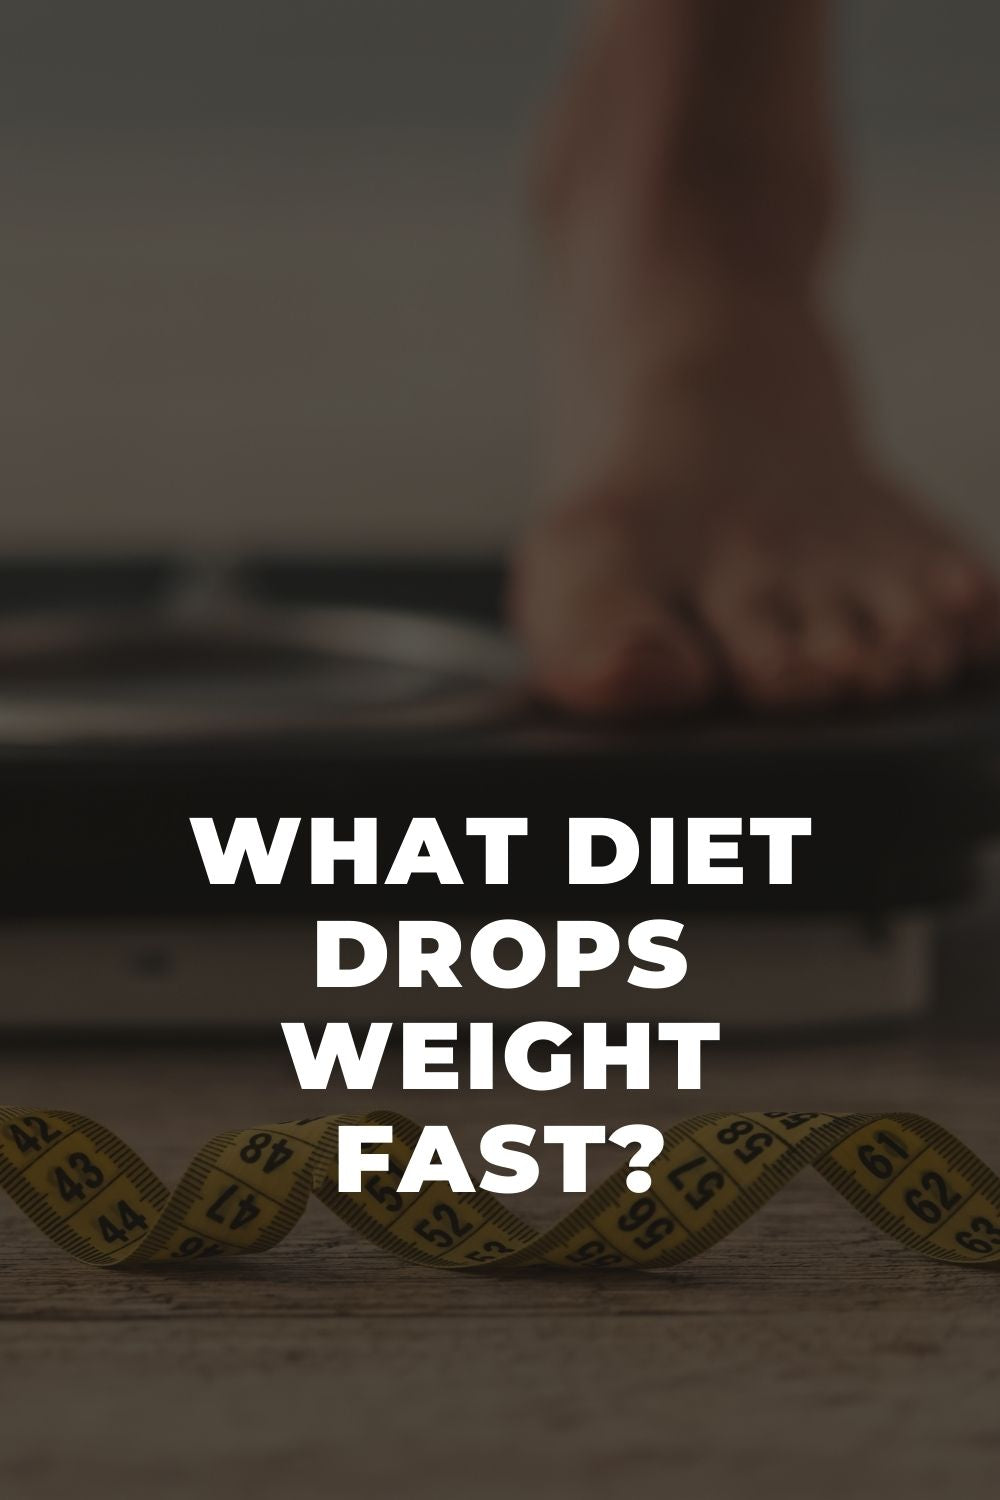 What Diet Drops Weight Fast?